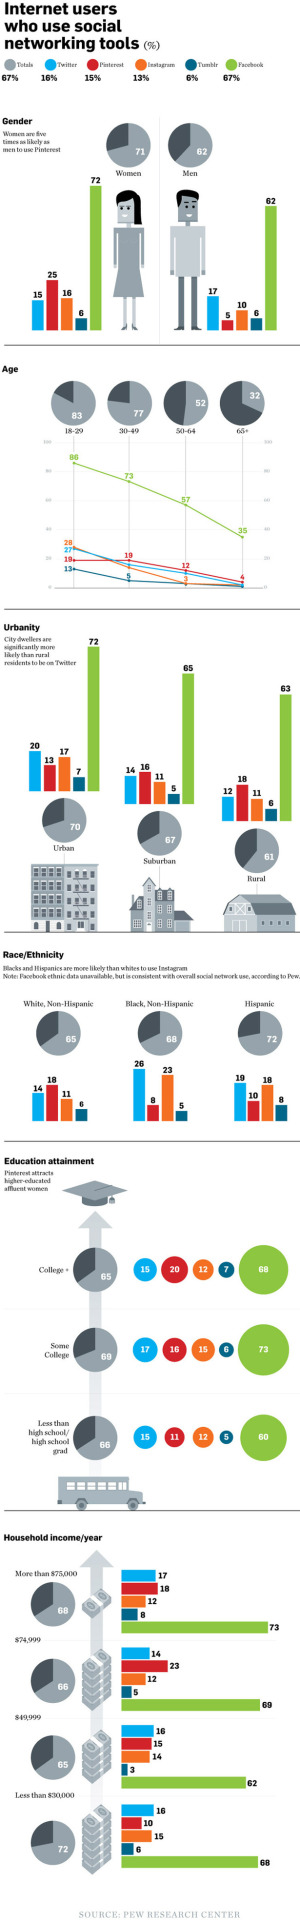 Social media demographics 2013 (Pew Research via AdWeek)